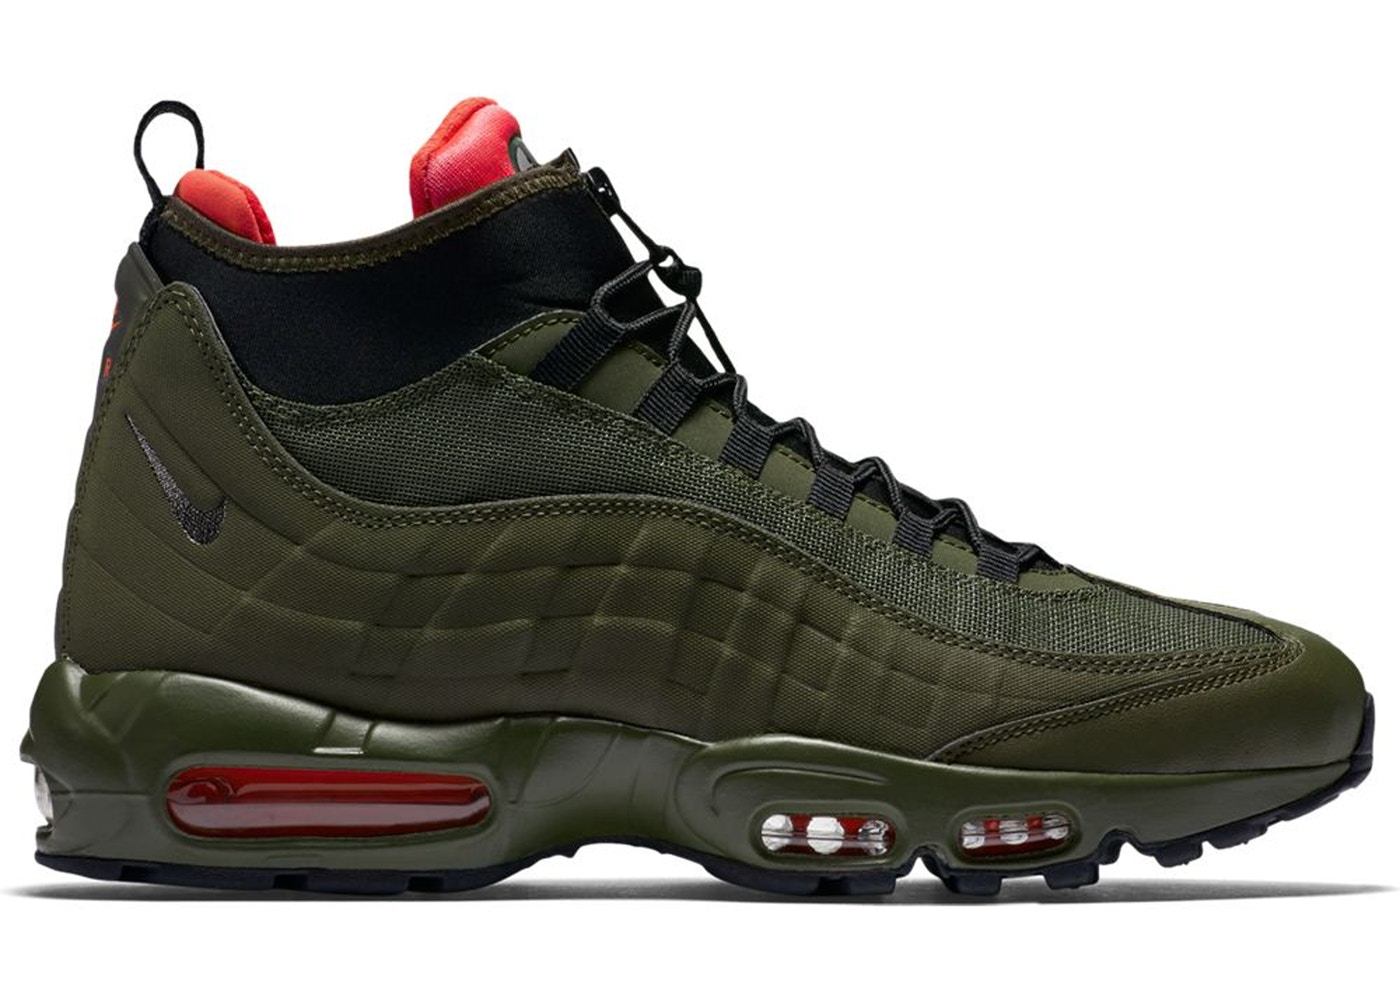 new arrival 99dcc 04939 Air Max 95 Sneakerboot Dark Loden